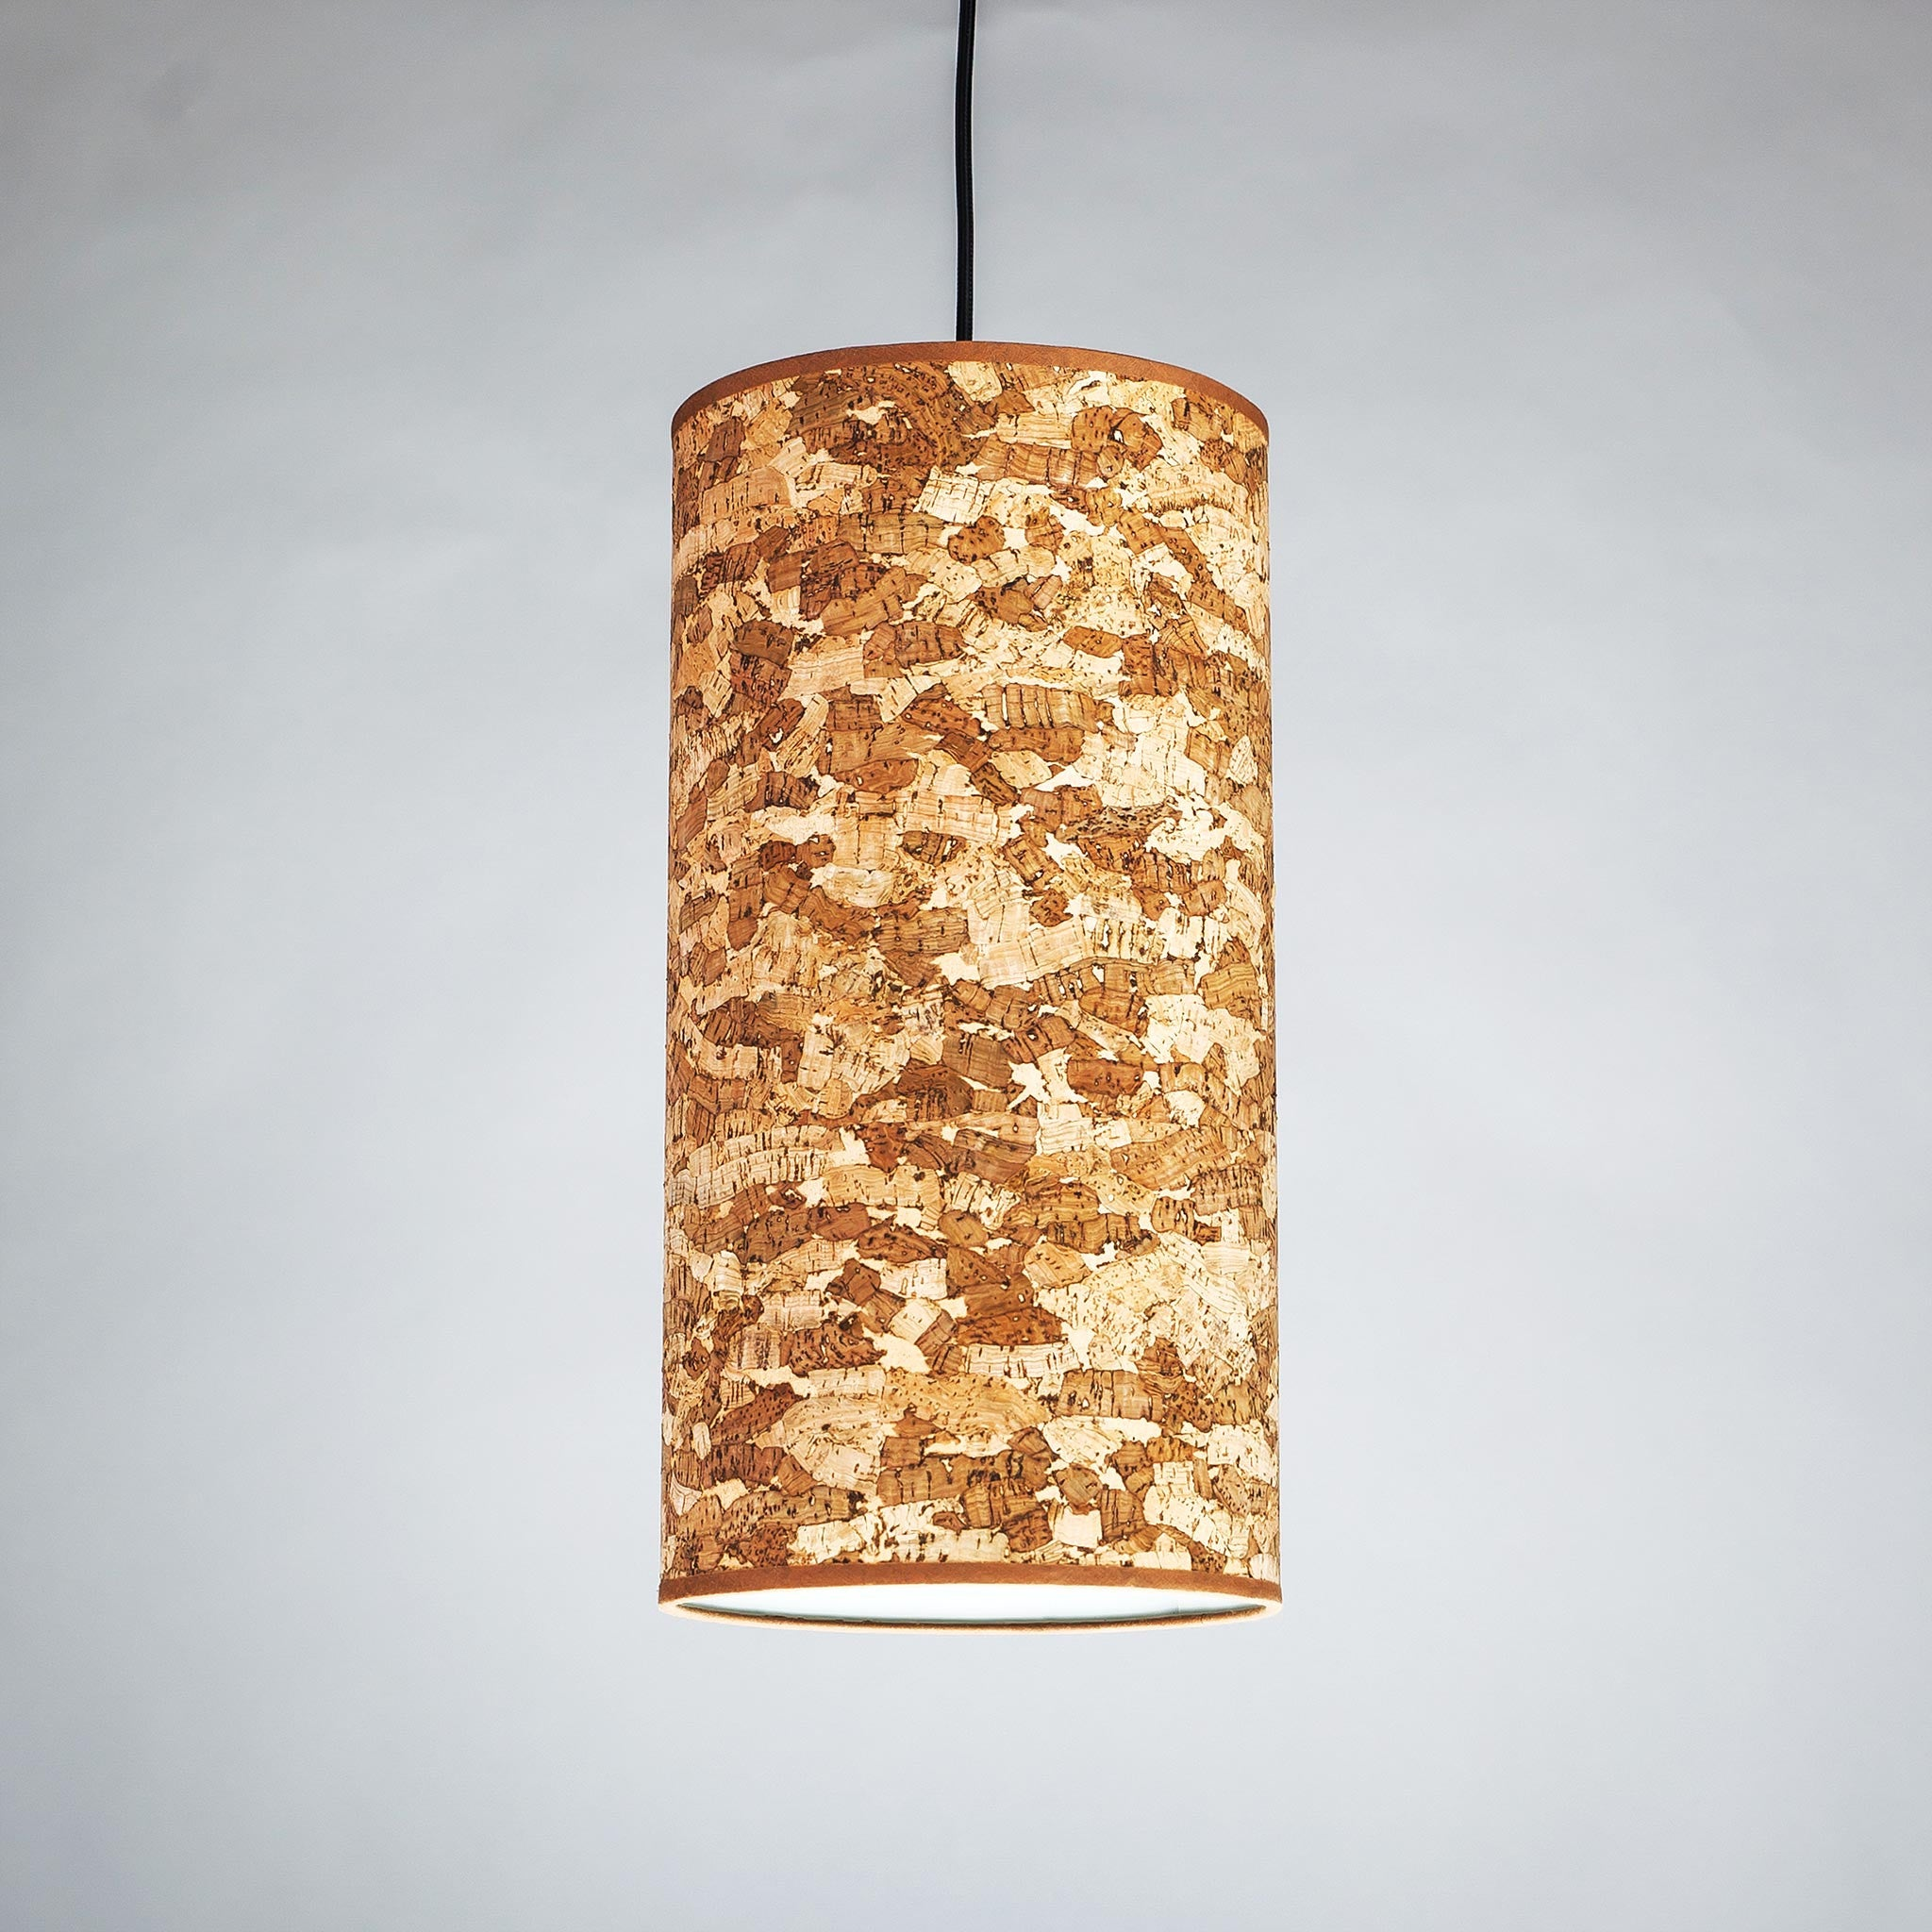 Cork natural lamp shade small by innermost funky lamp shades cork natural lamp shade small aloadofball Images